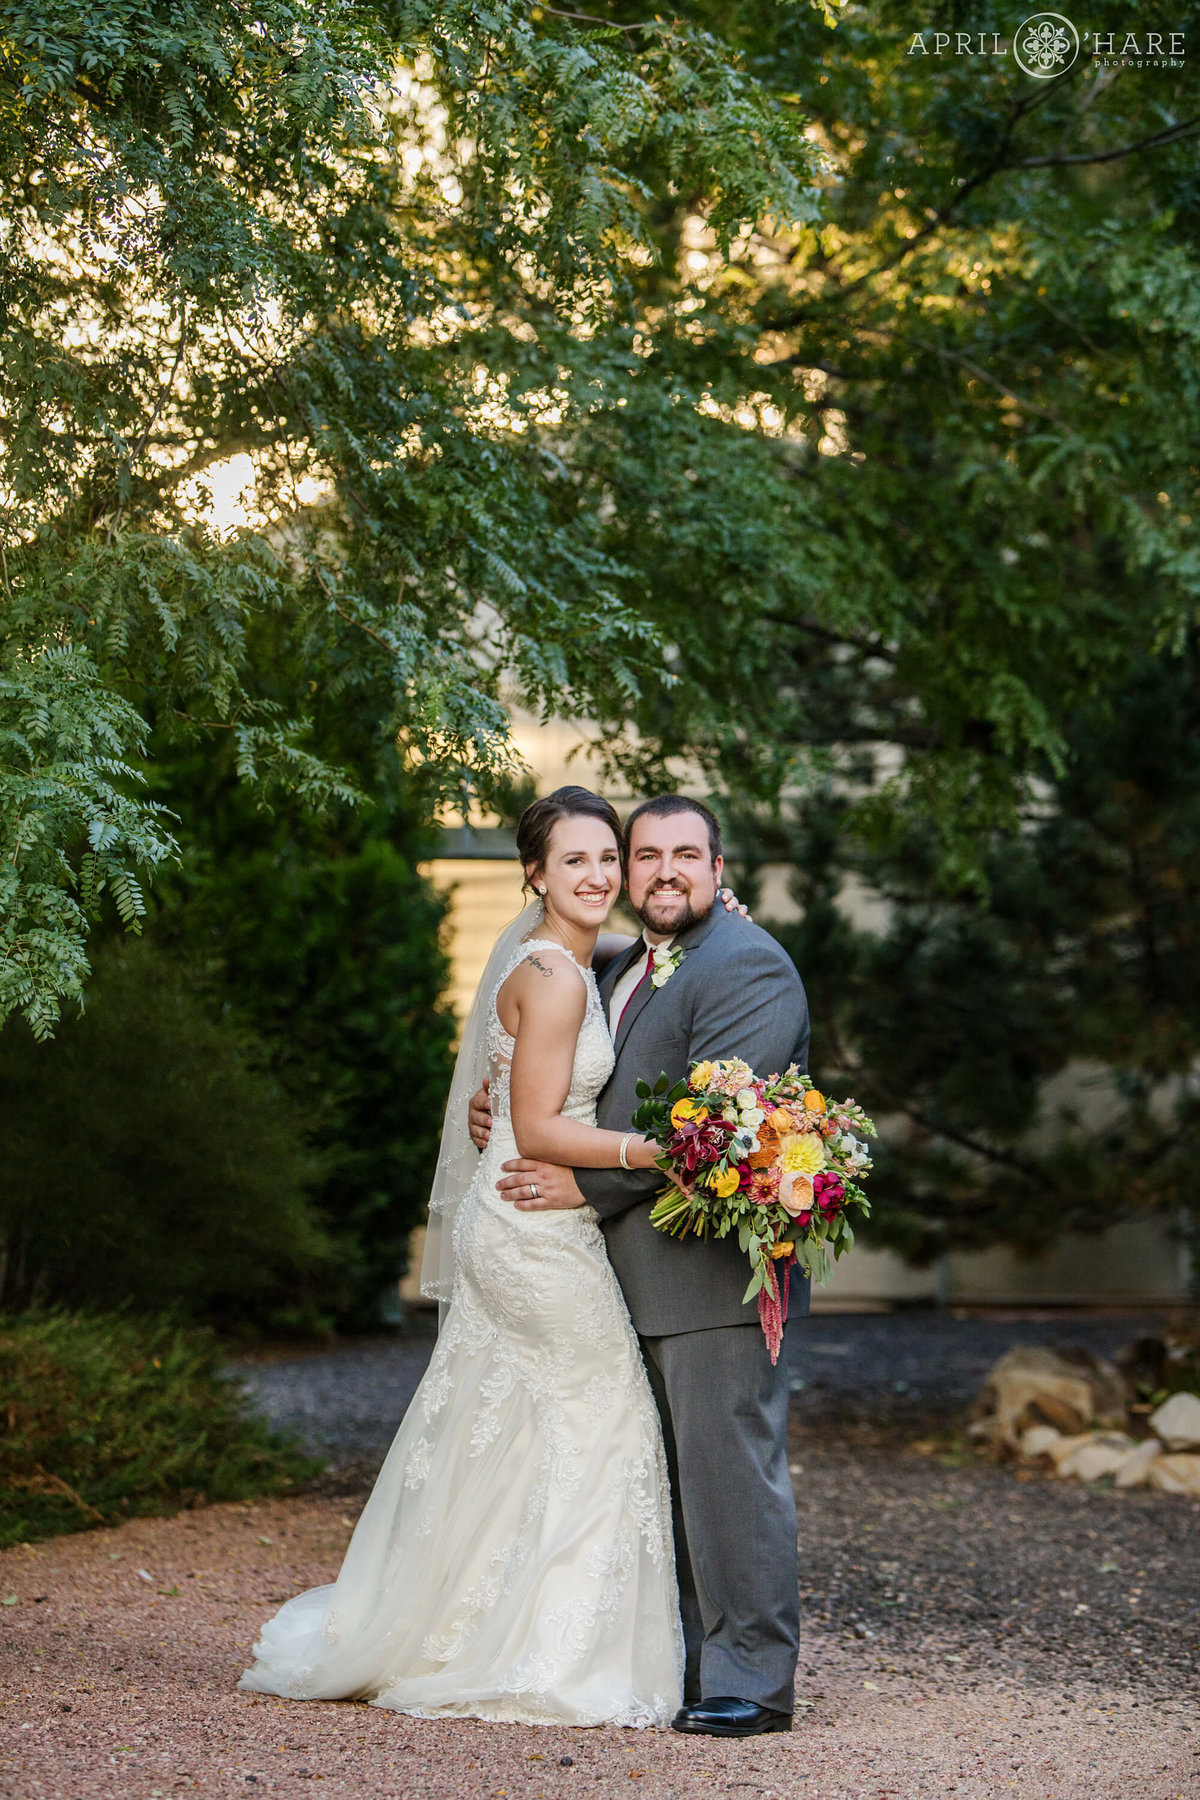 Denver Wedding Photographer at Church Ranch Event Center in Colorado